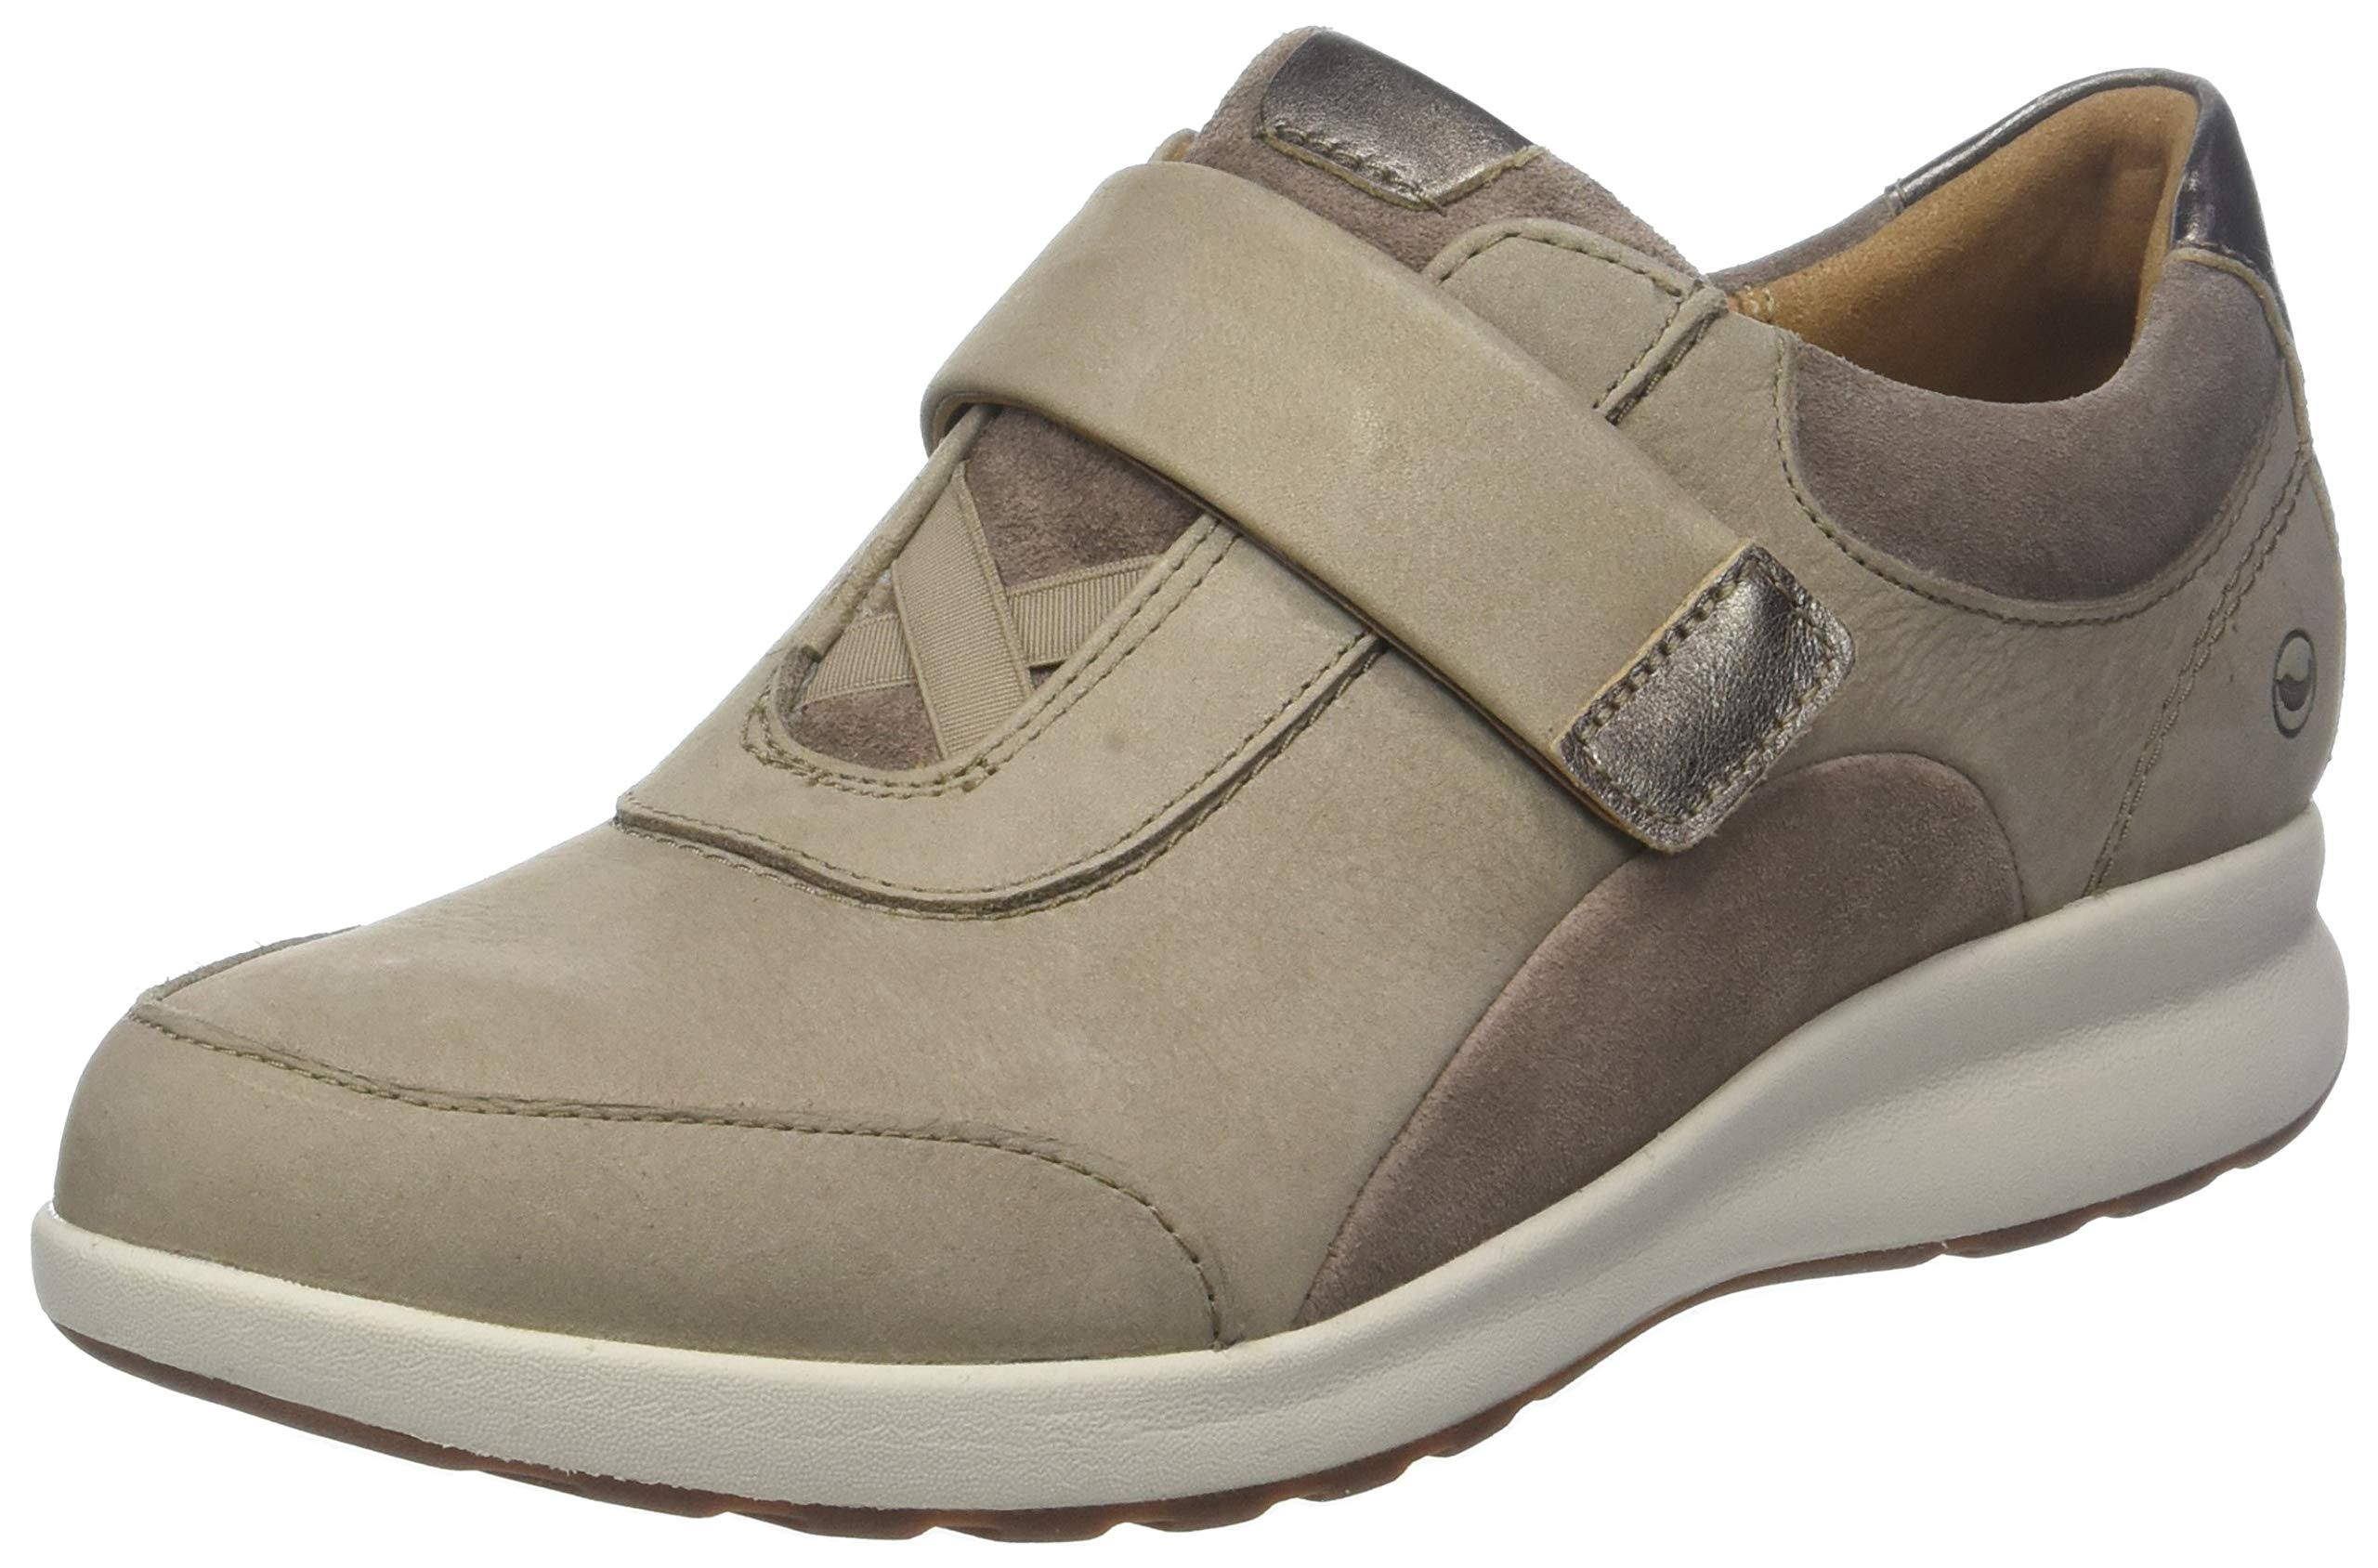 Low Un Sneakers Damesschoenen Clarks Adorn Pebble Lo top 1J5uTFlKc3